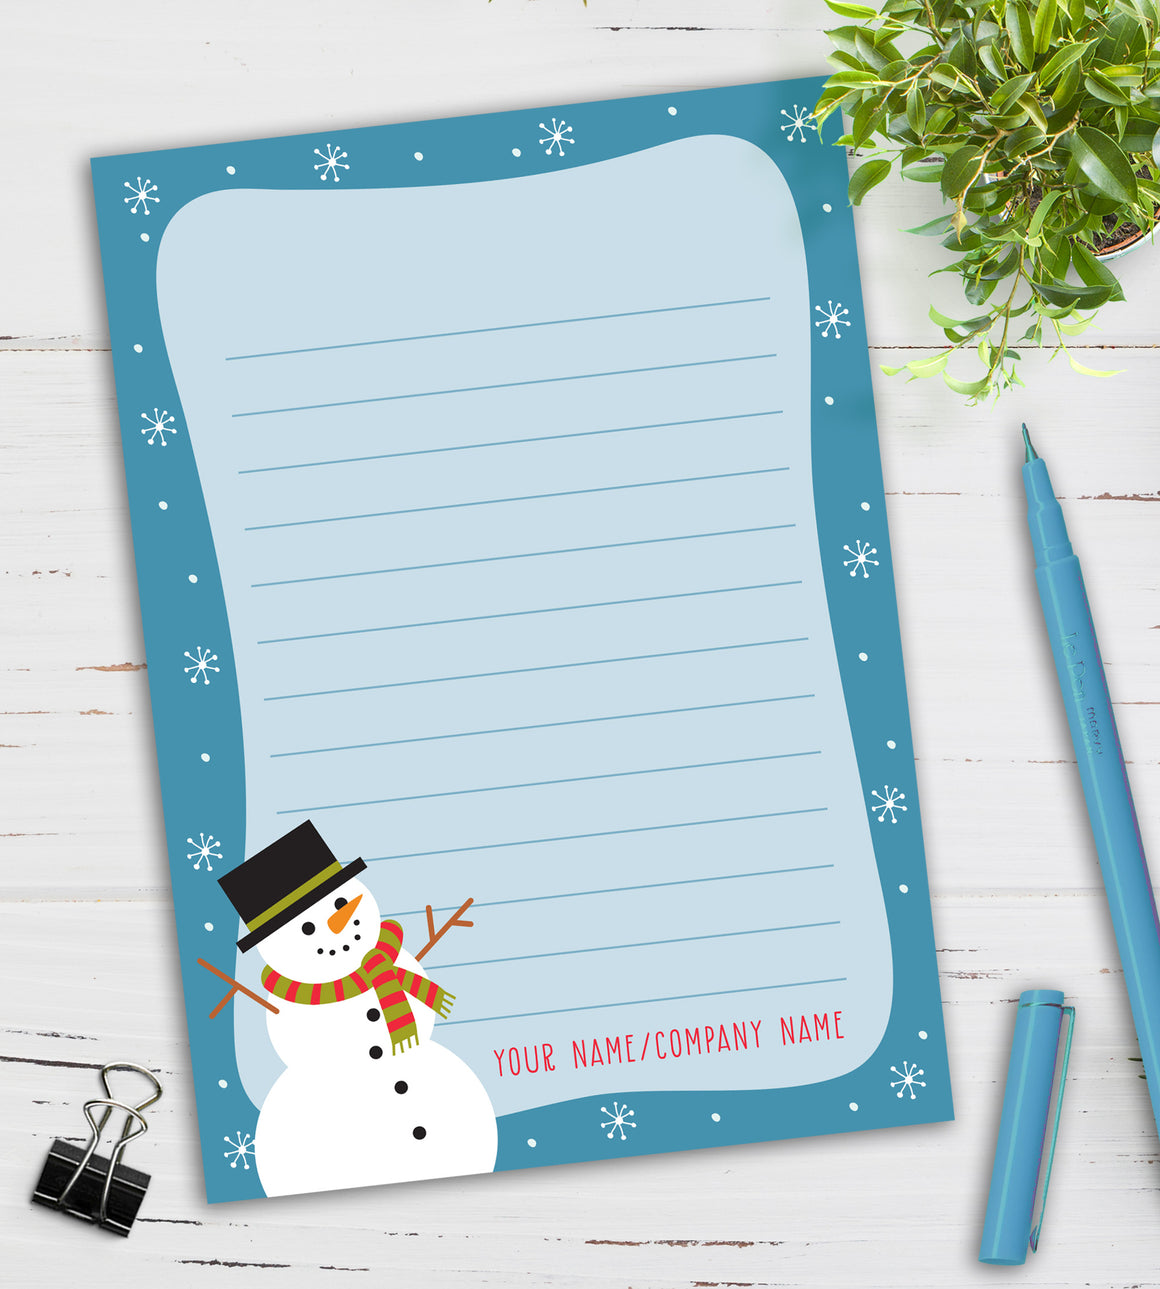 Personalized Notepad - Snowman